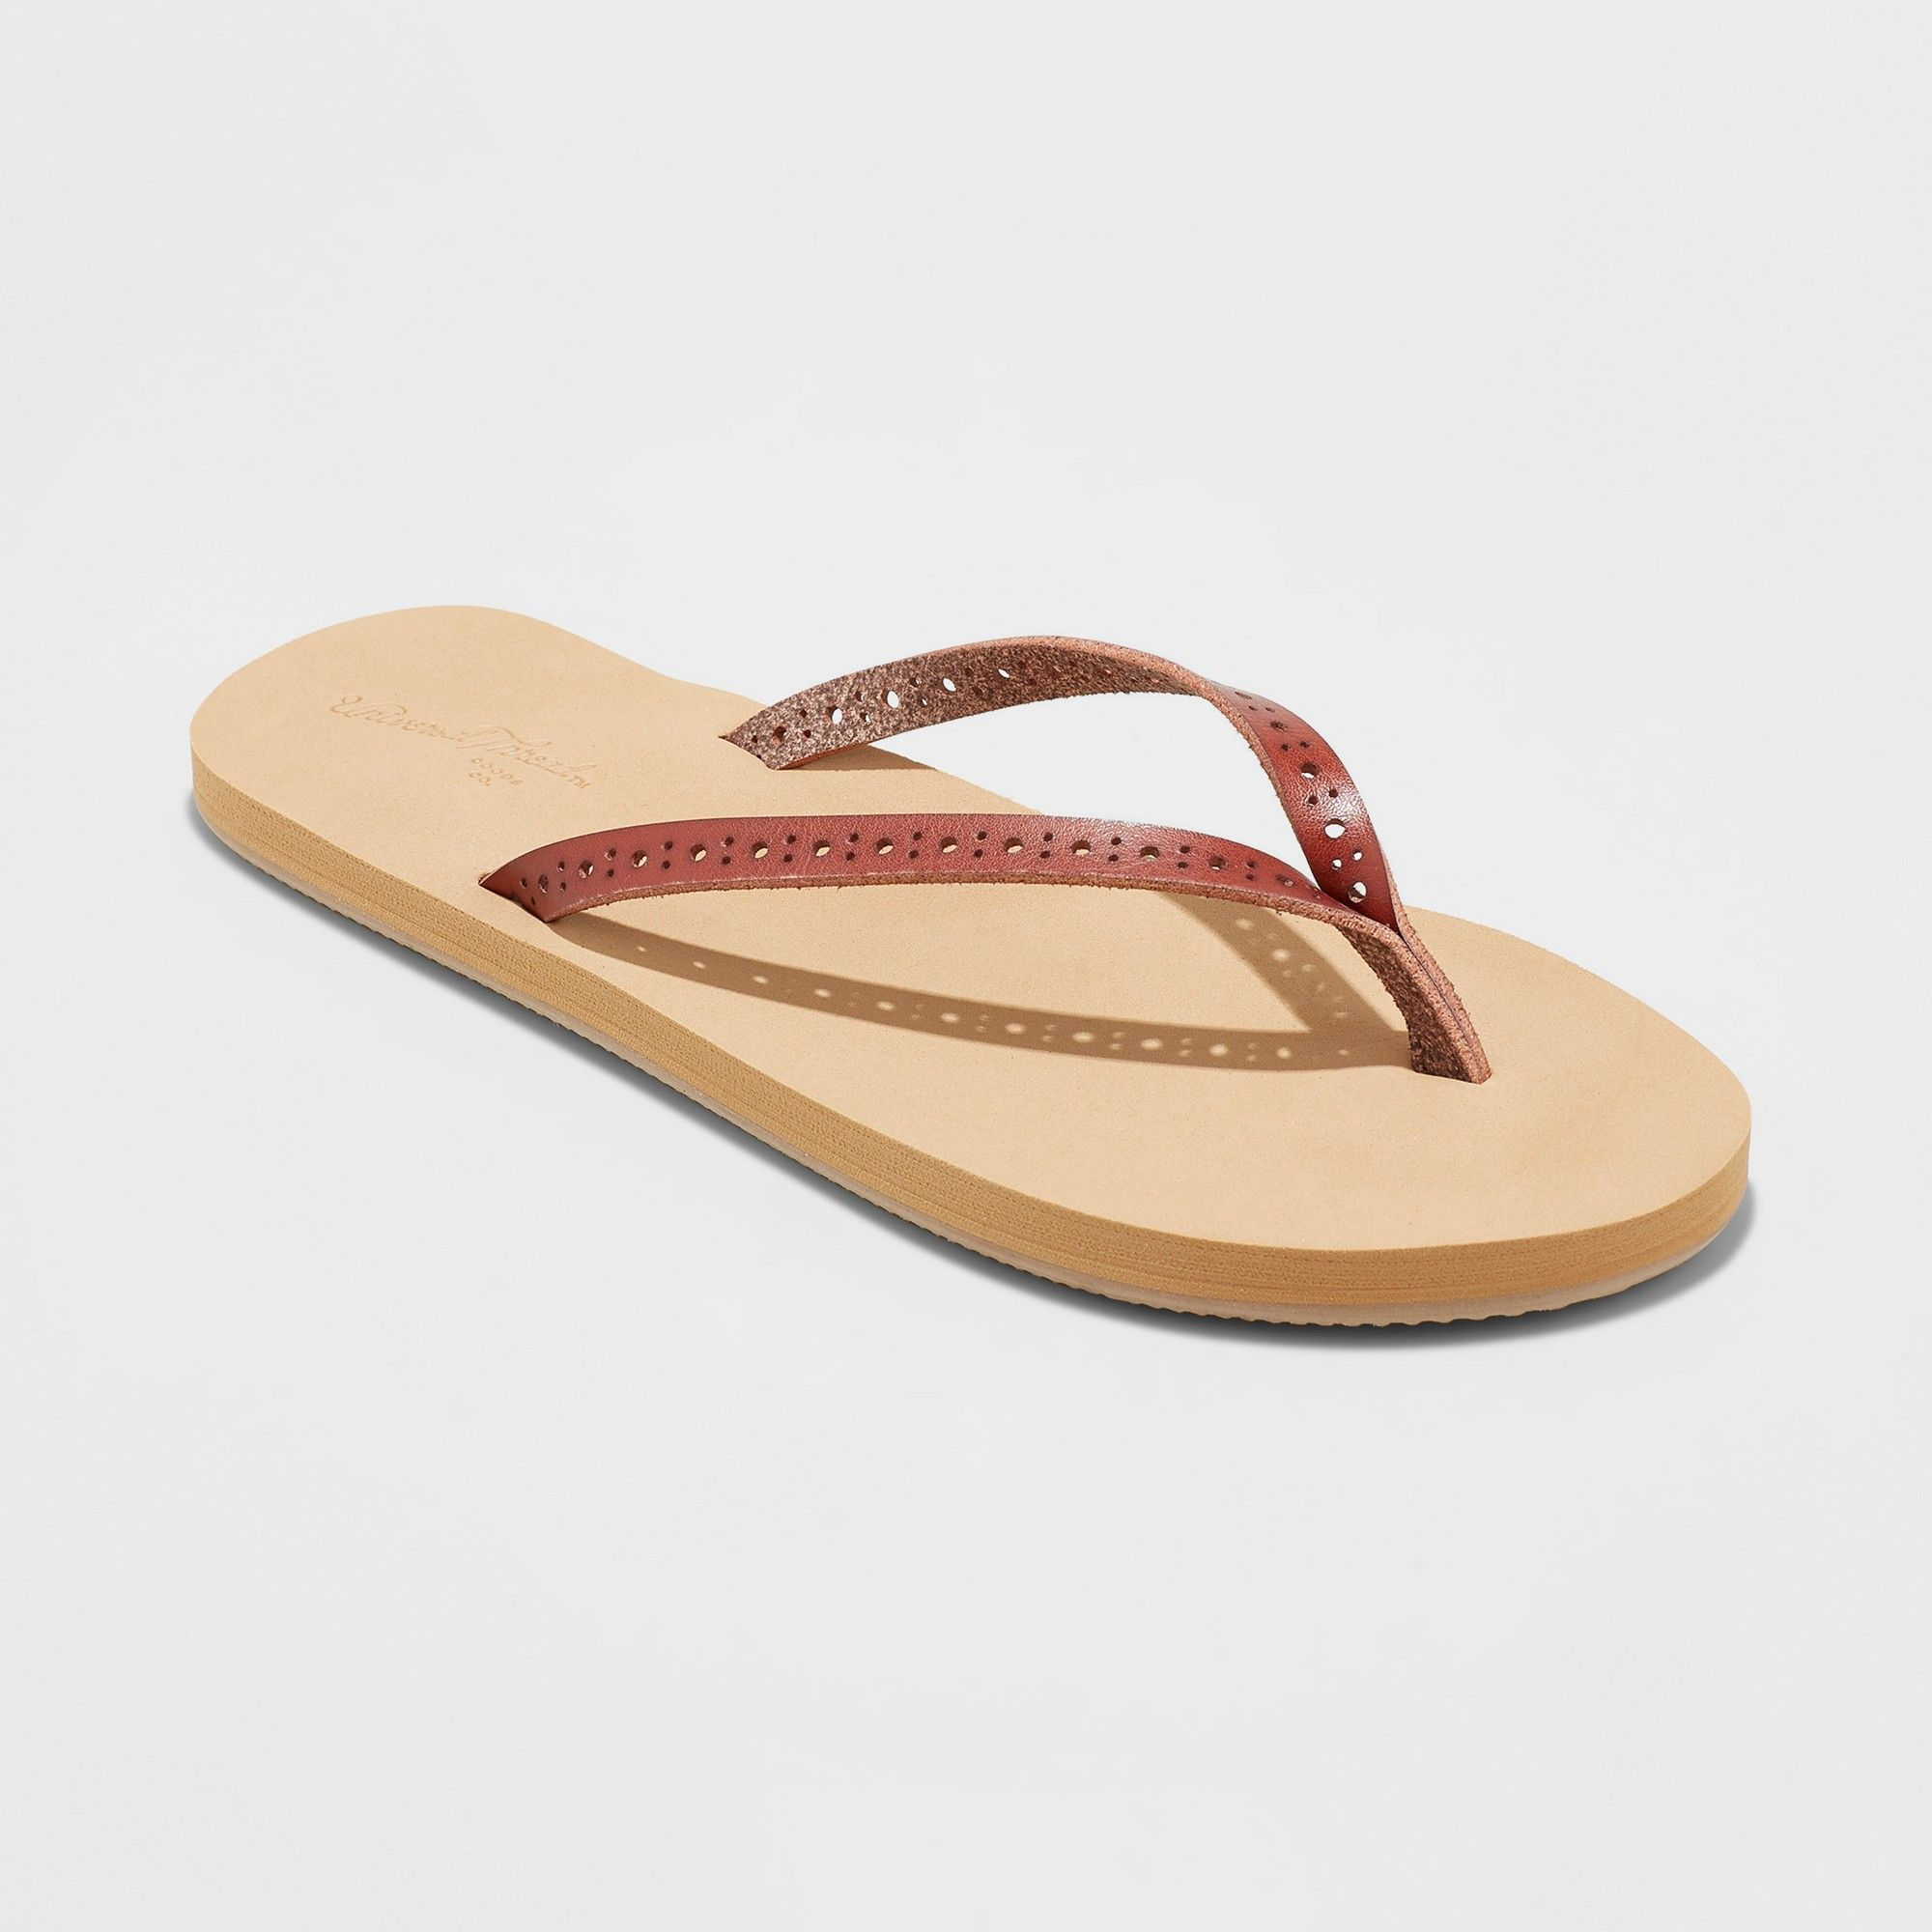 d0dadb64c Women s Demi Flip Flop Sandal - Universal Thread Brown 10